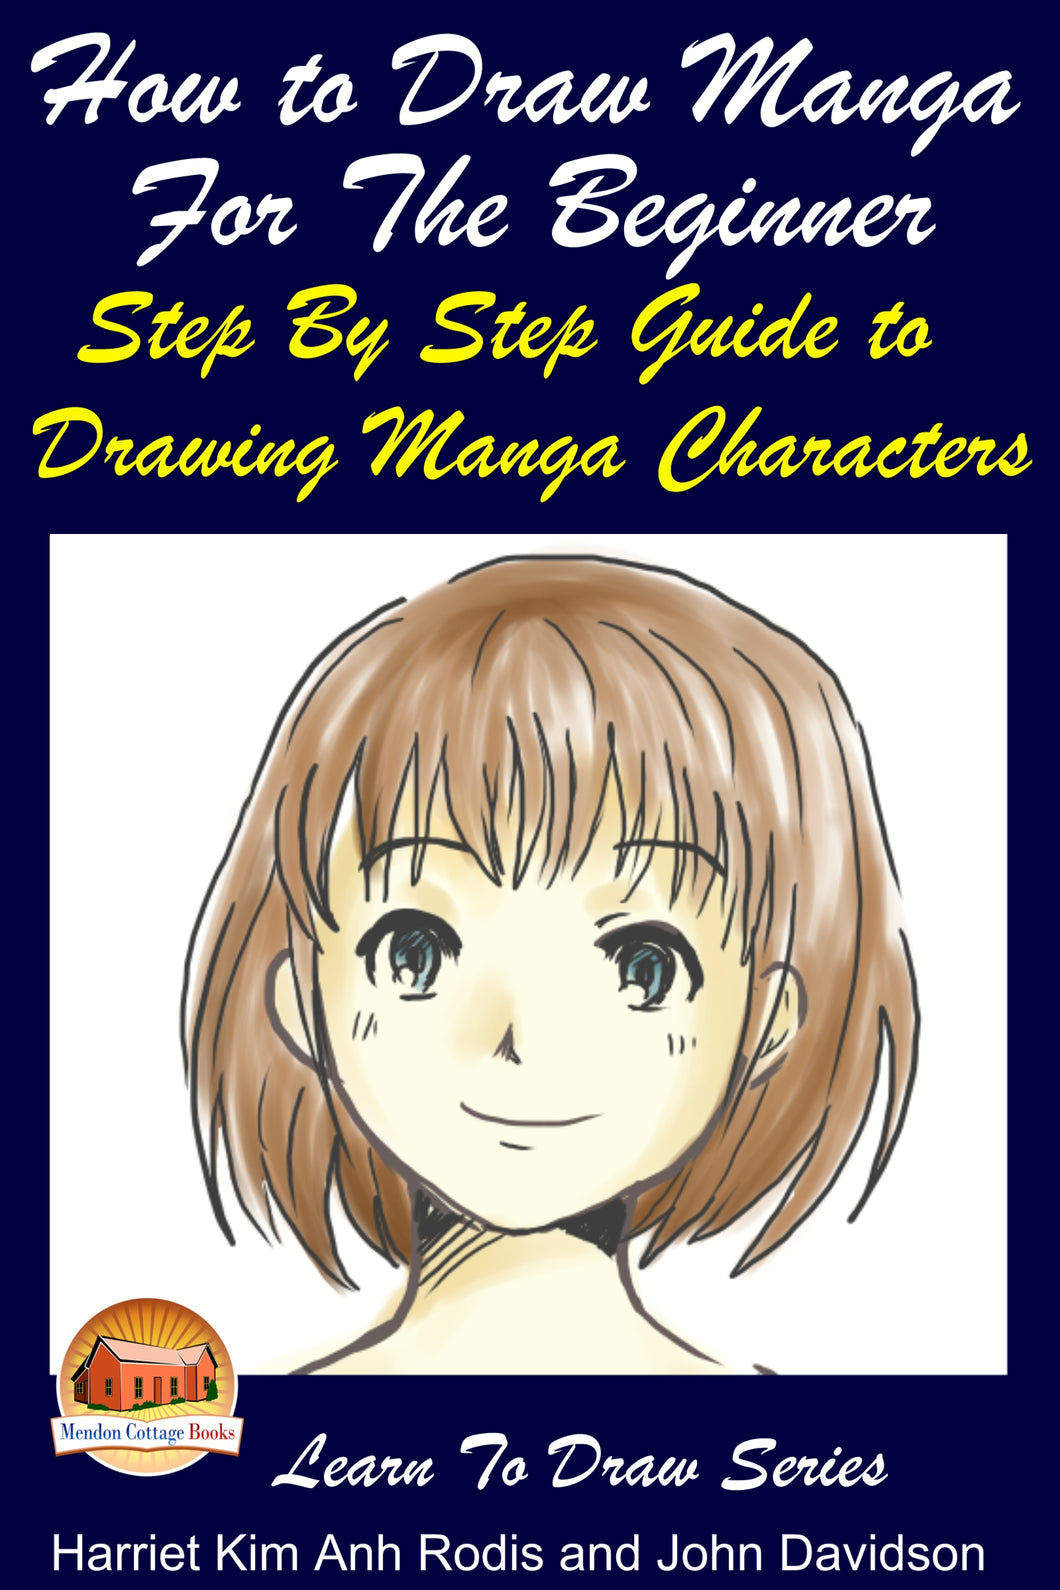 How to Draw Manga For the Beginner - Step By Step Guide to Drawing Manga Characters